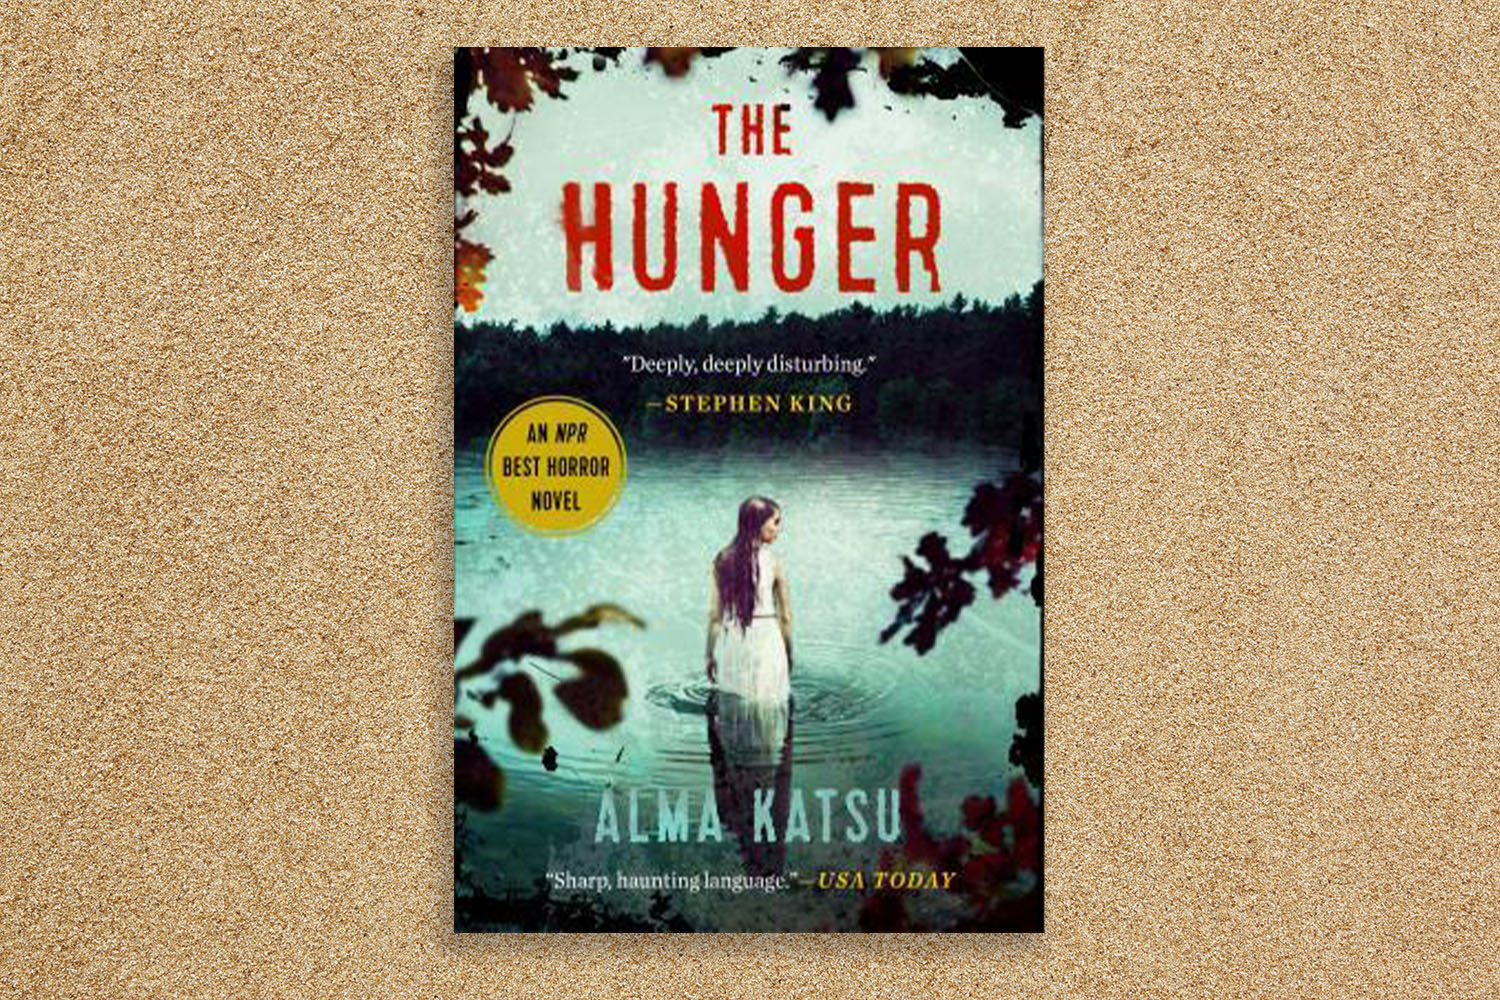 The Hunger cover.